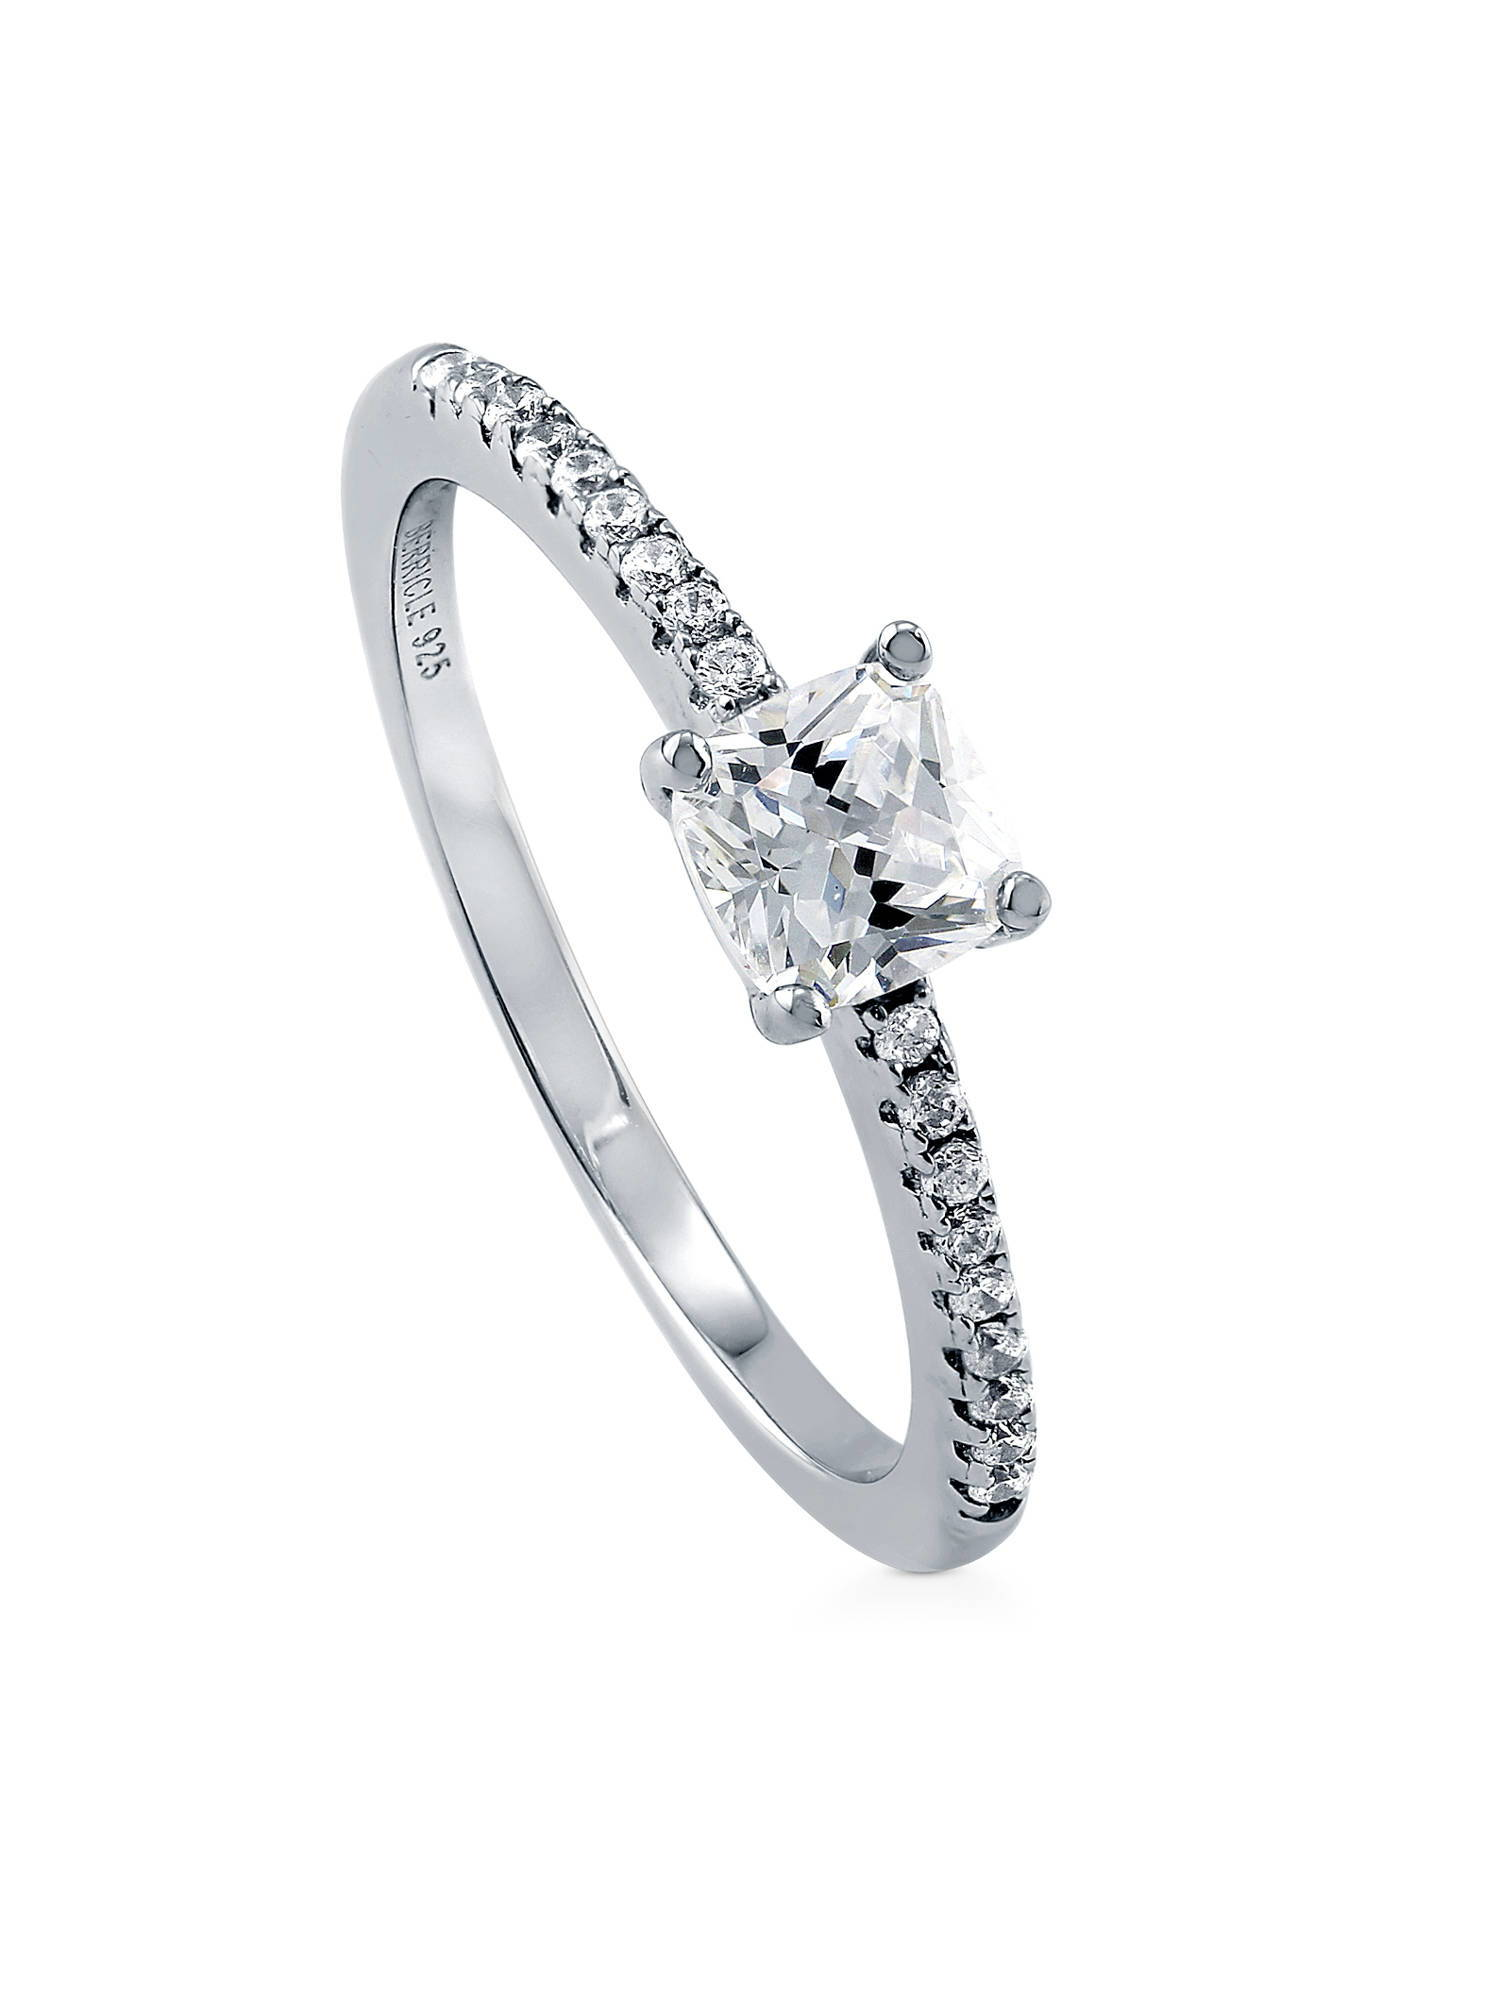 BERRICLE Rhodium Plated Sterling Silver Cubic Zirconia CZ Solitaire Promise Engagement Ring Size 3.5